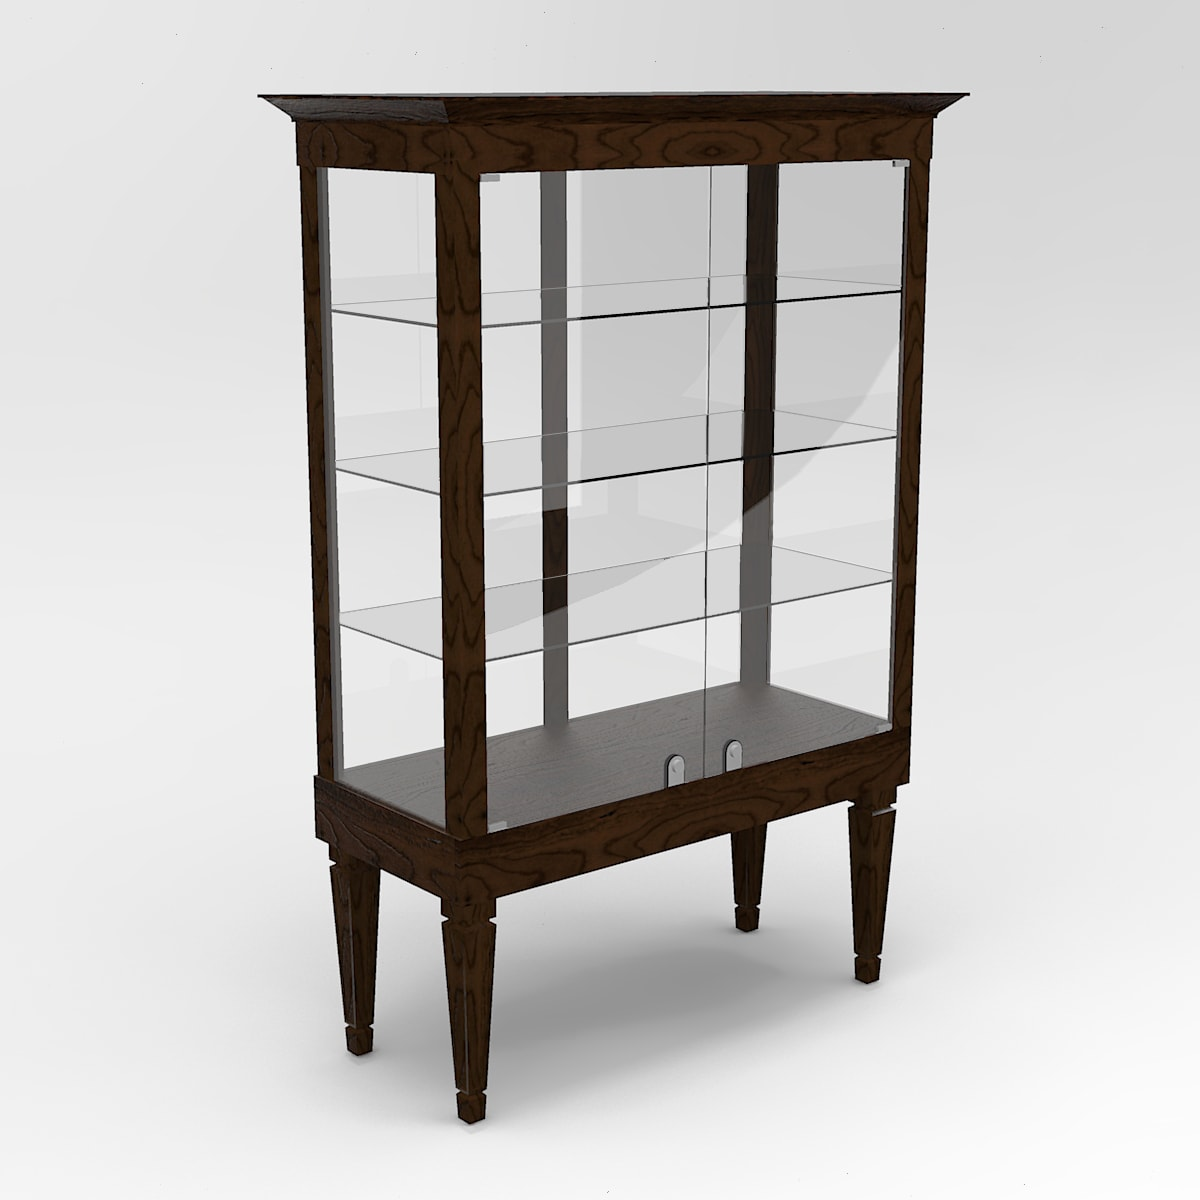 Extended Executive Leg Rectangle Tower Display Case To Purchase